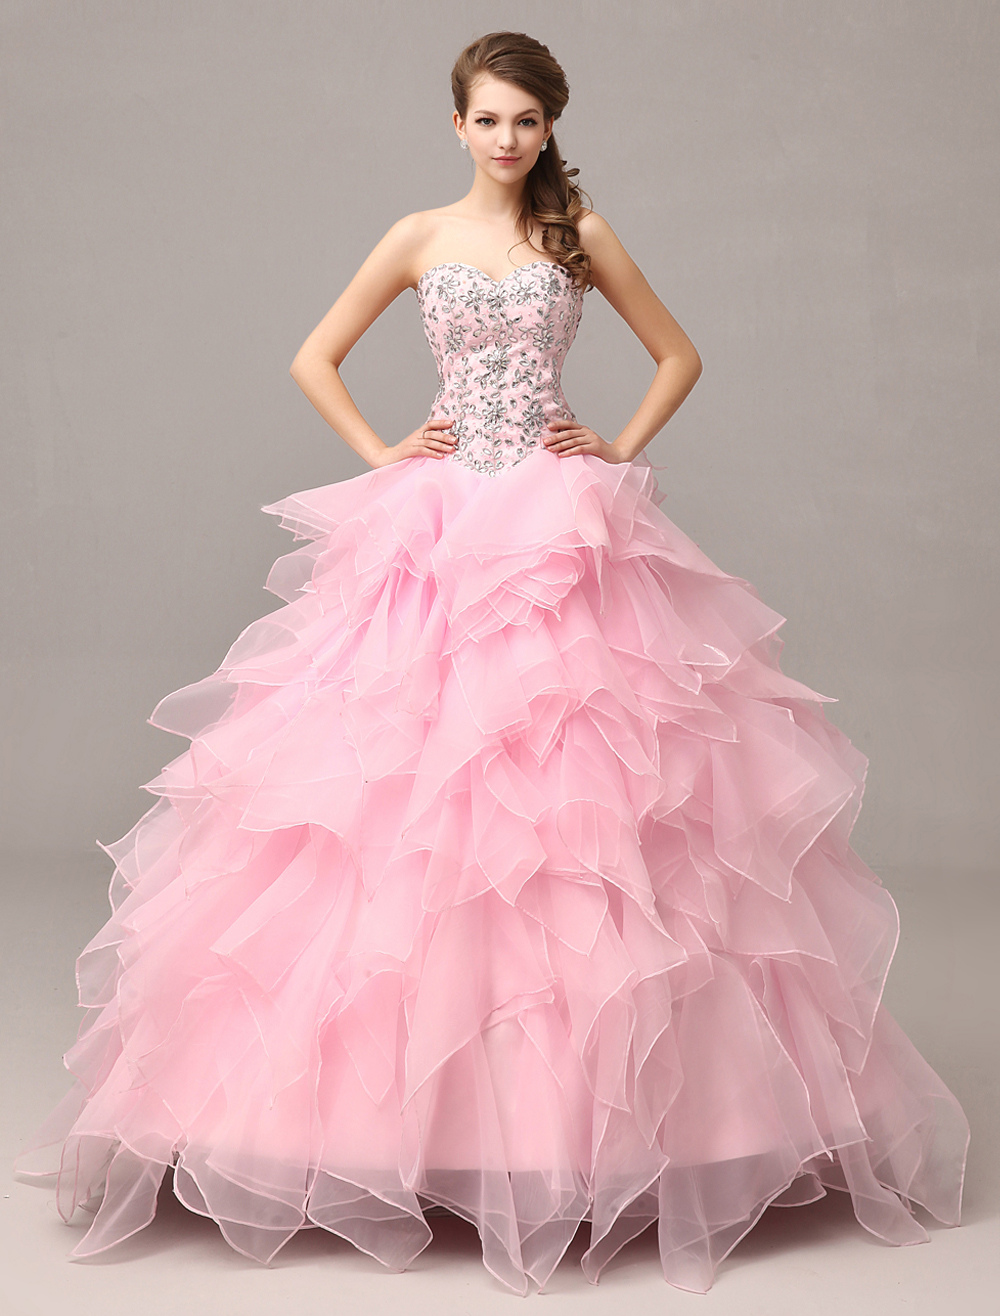 f09f2cbb6f8 Pink Prom Dresses 2019 Long Organza Tiered Ruffles Quinceanera Dresses Ball  Gown Sweetheart Strapless Beading Occasion Dress - Milanoo.com